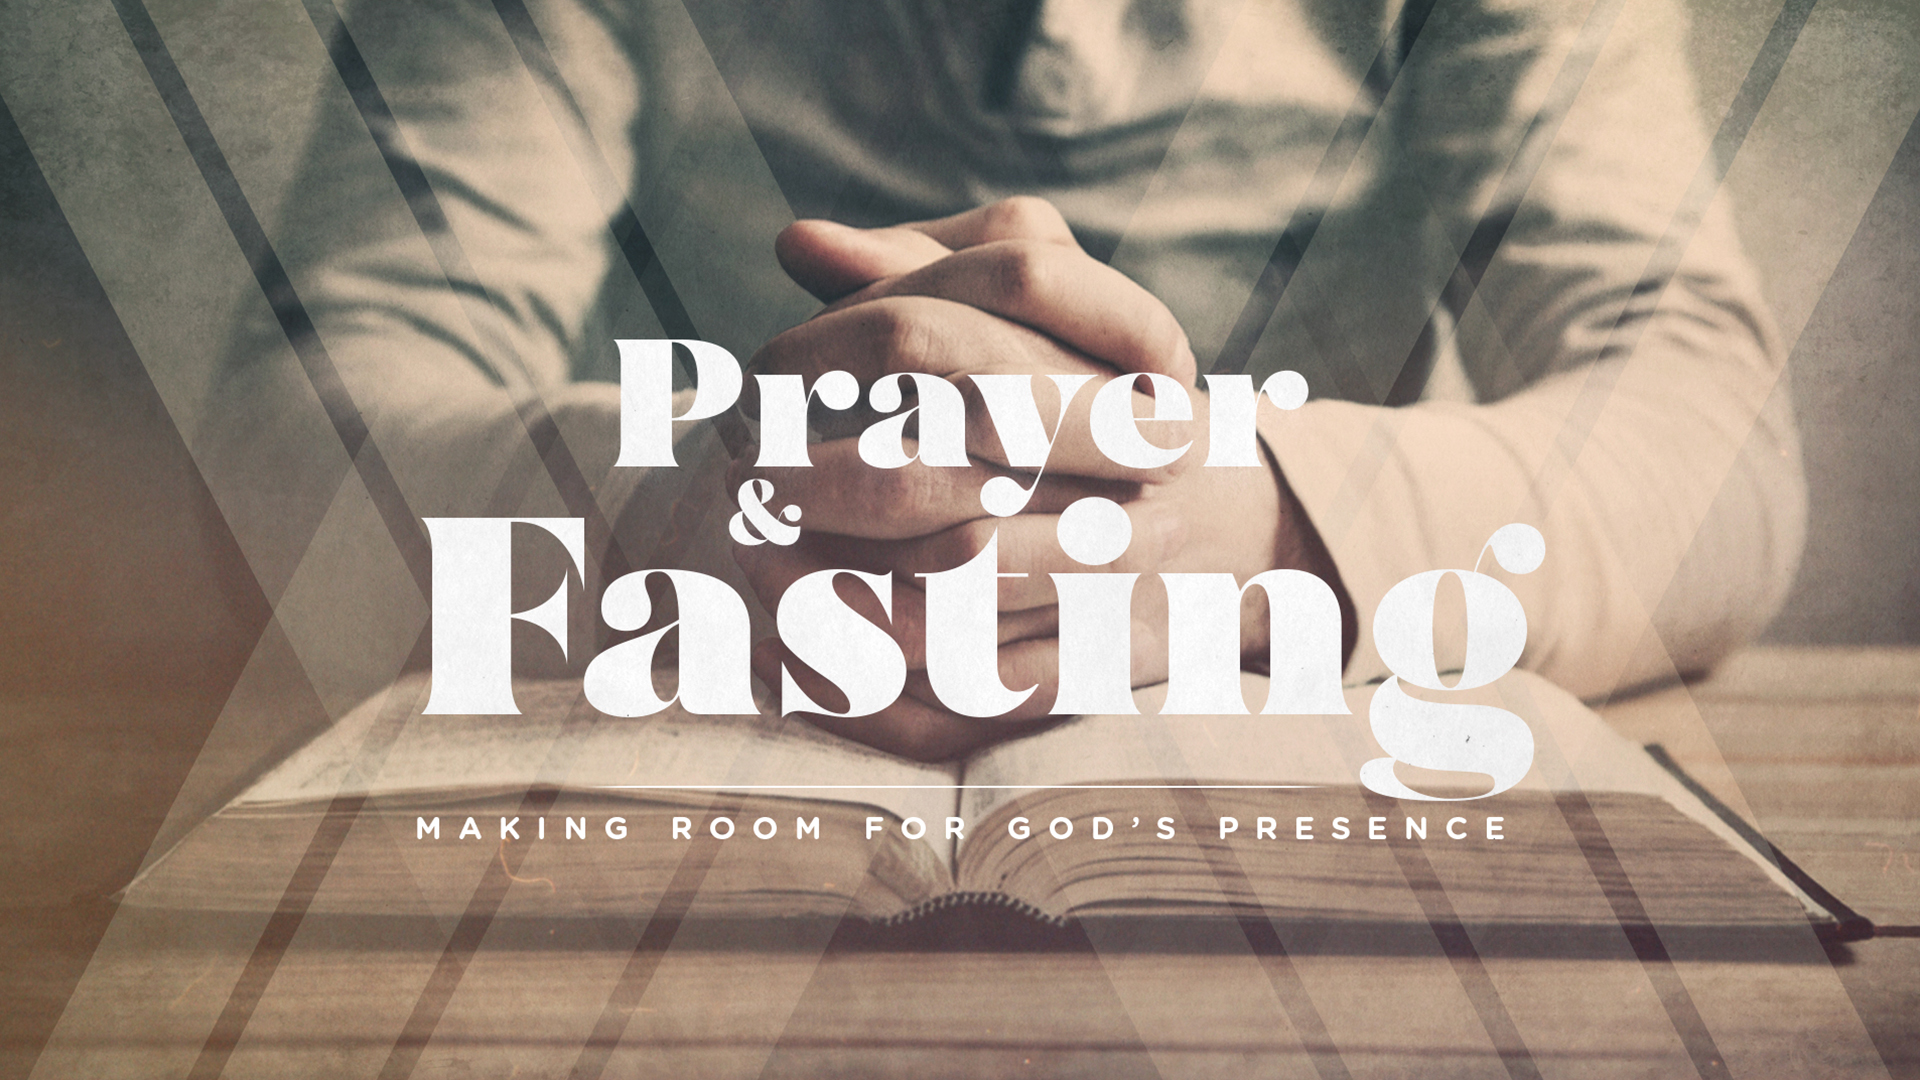 Prayer Works - If you ever get to a place in your life where you feel like something is missing, it's probably a connection problem: you are disconnected from God and too connected to the world. Prayer and fasting can have a powerful impact on setting your life back on track.Prayer connects us to God.The more time you spend with something or someone, the more confidence you build in it. The same is true for God. The more time you spend with God, the more your faith in Him will grow.